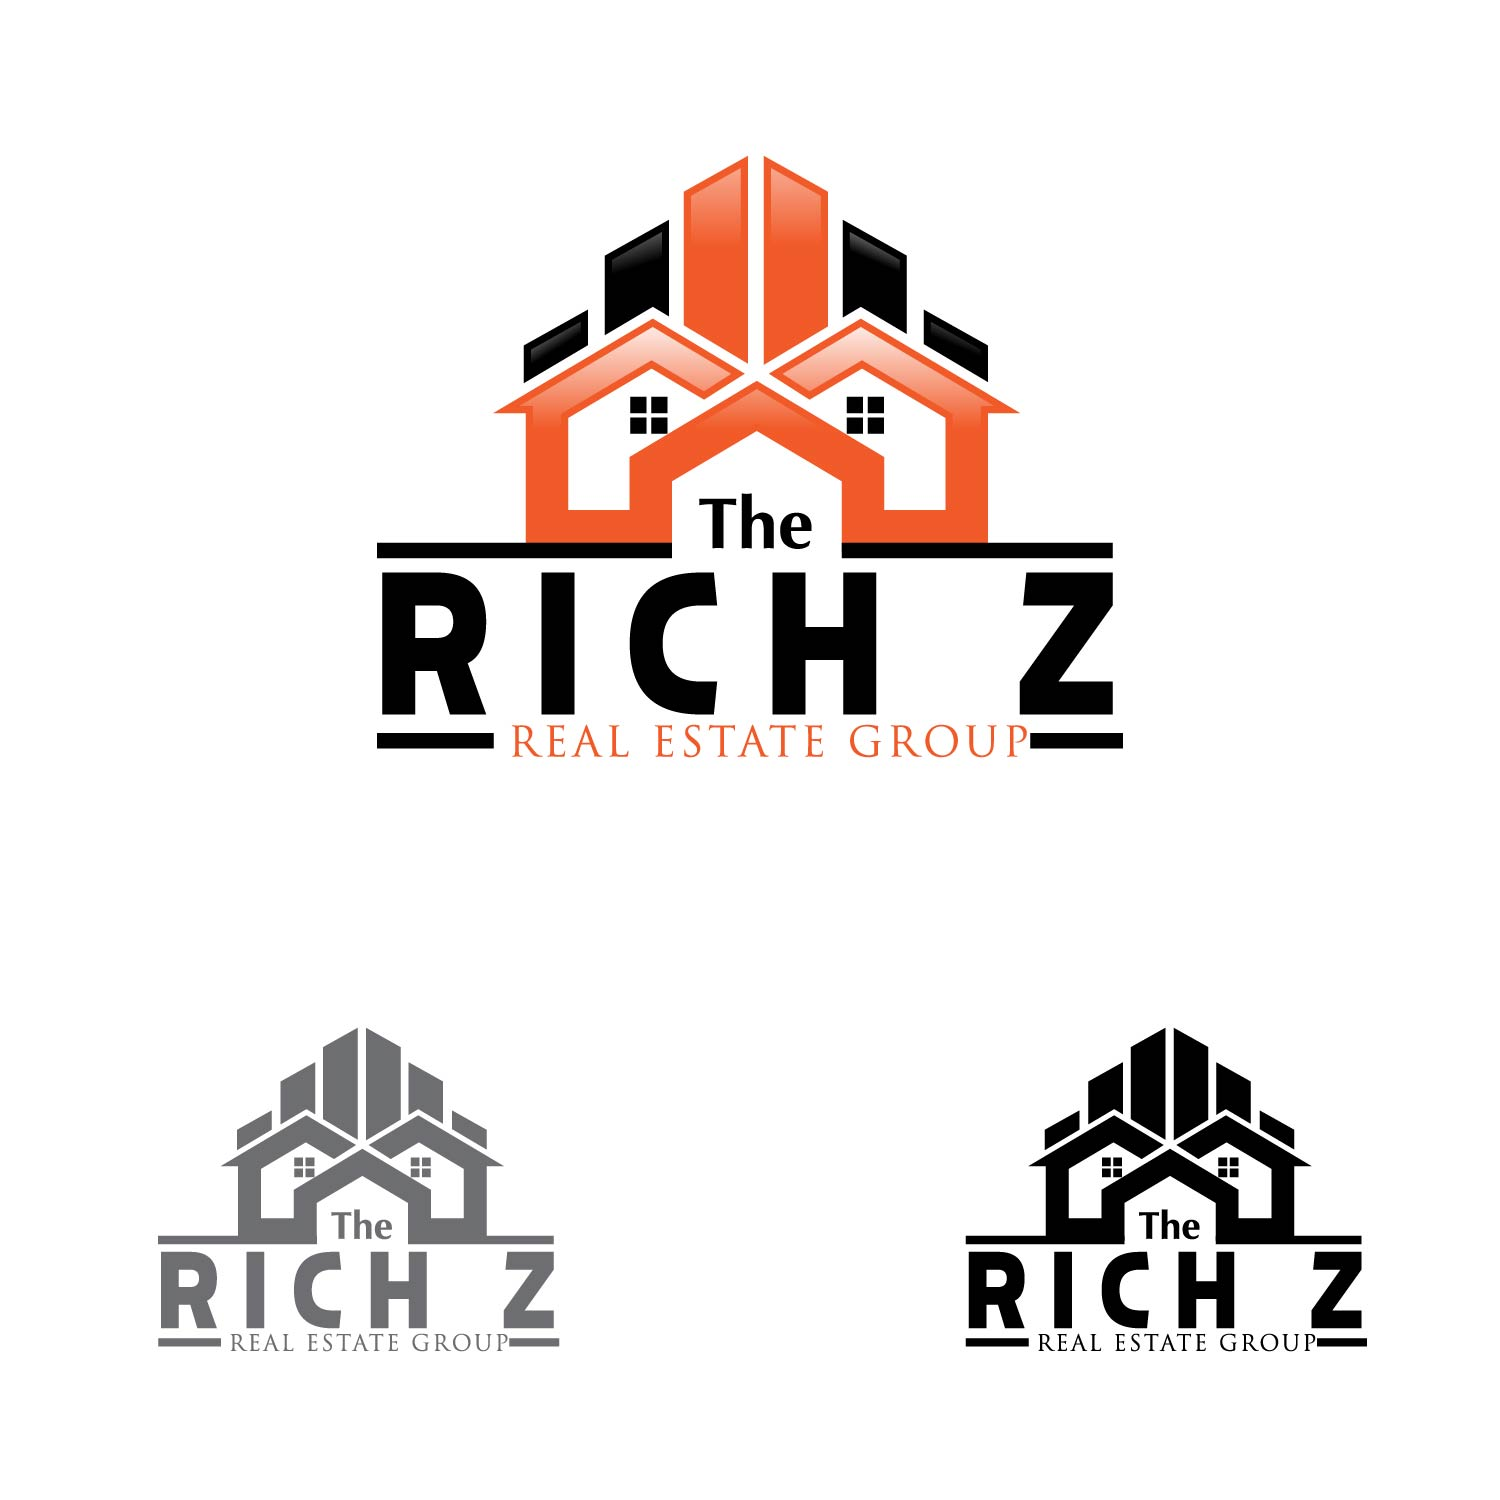 Logo Design by lagalag - Entry No. 153 in the Logo Design Contest The Rich Z. Real Estate Group Logo Design.